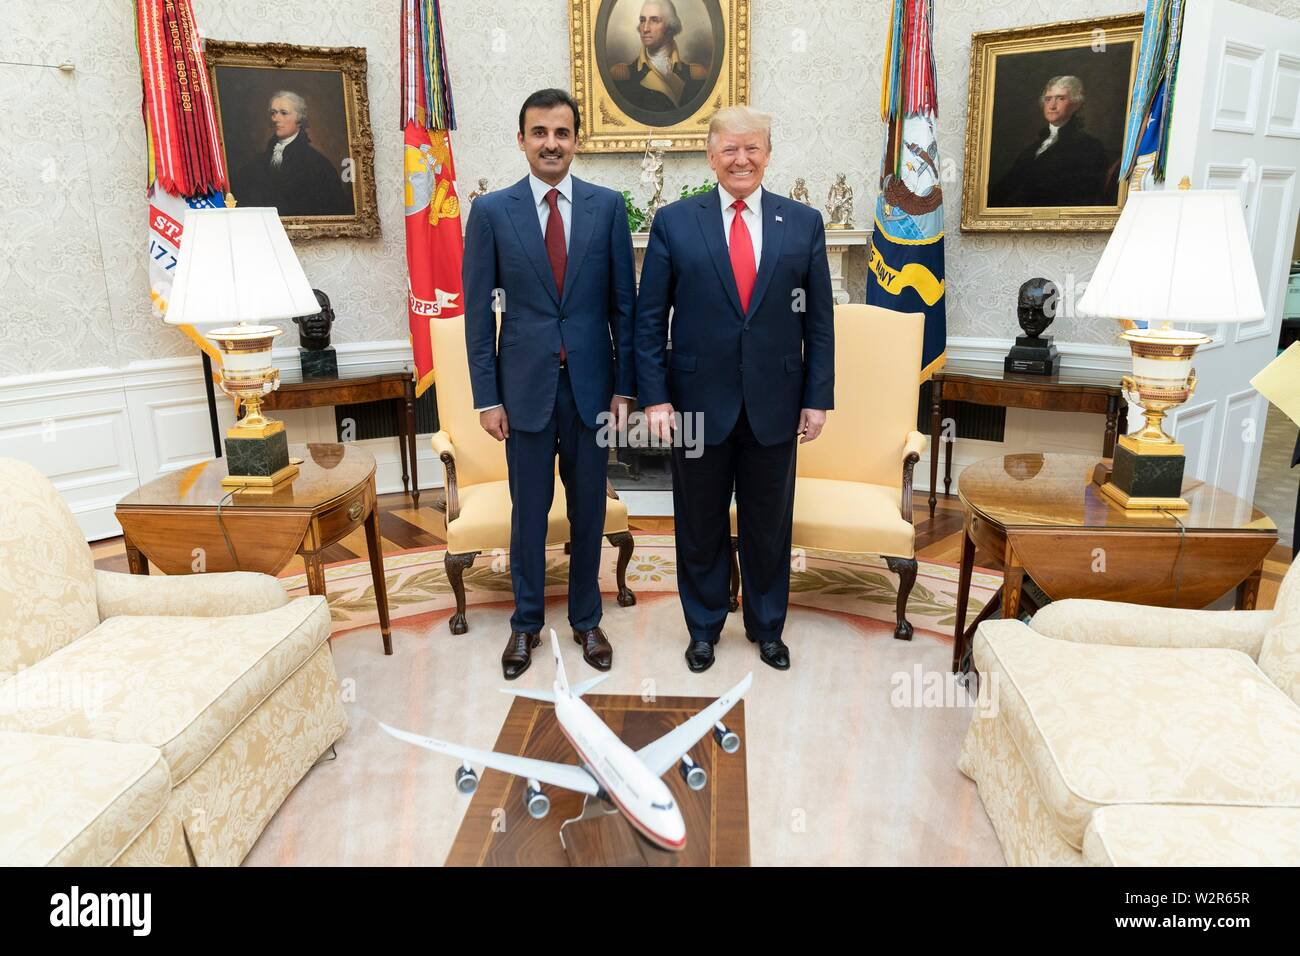 A model of a Boeing 747 is on display as U.S President Donald Trump holds a bilateral meeting with the Emir of Qatar Tamin bin Hamad Al Thani at the Oval Office of the White House July 9, 2019 in Washington, DC. - Stock Image